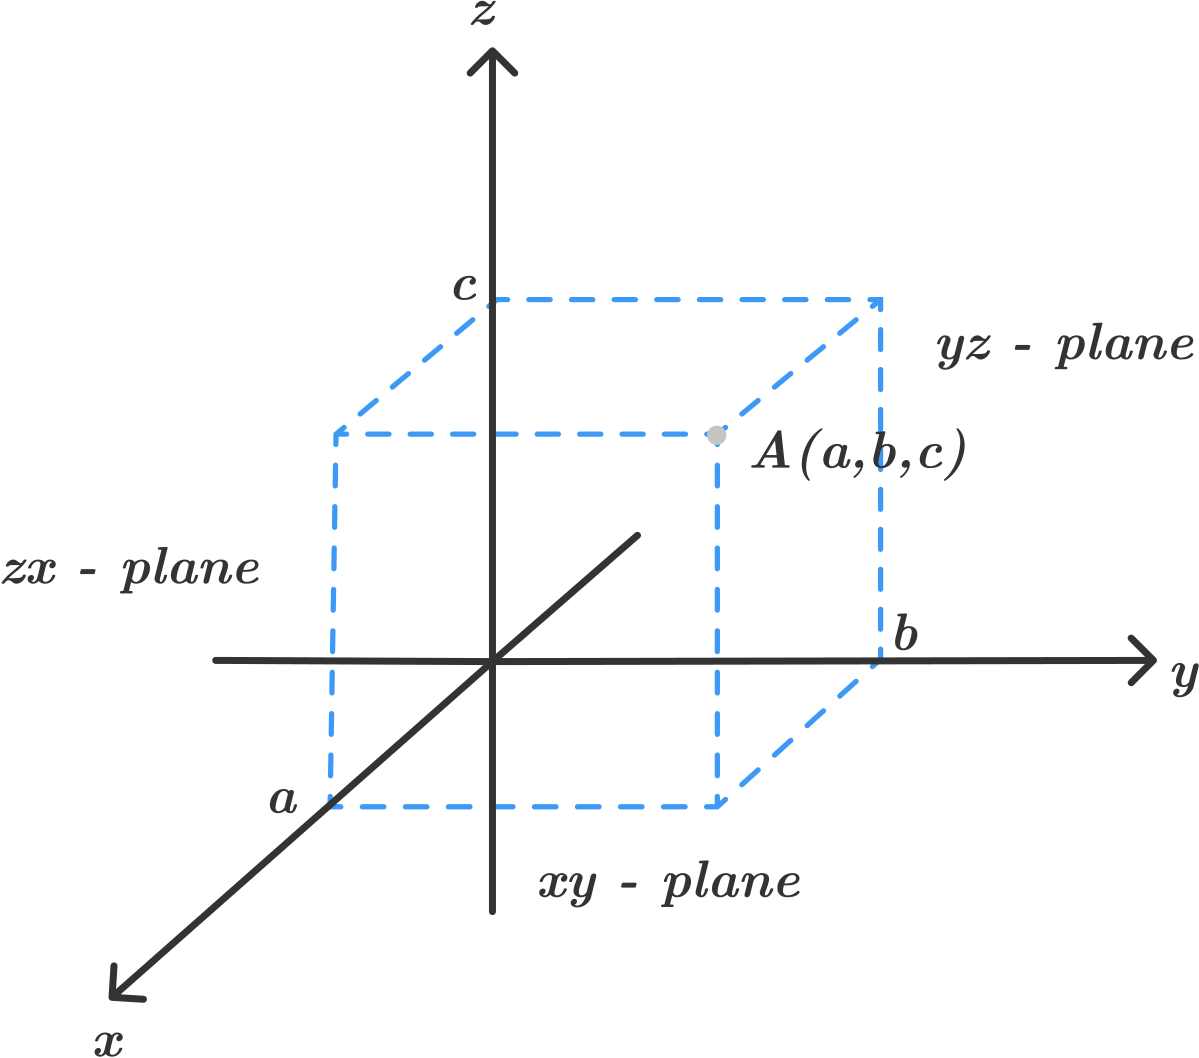 parallel planes equations. 1) the equation of plane which is parallel to xy-plane z\u003dc. 2) yz-plane x\u003da. planes equations i